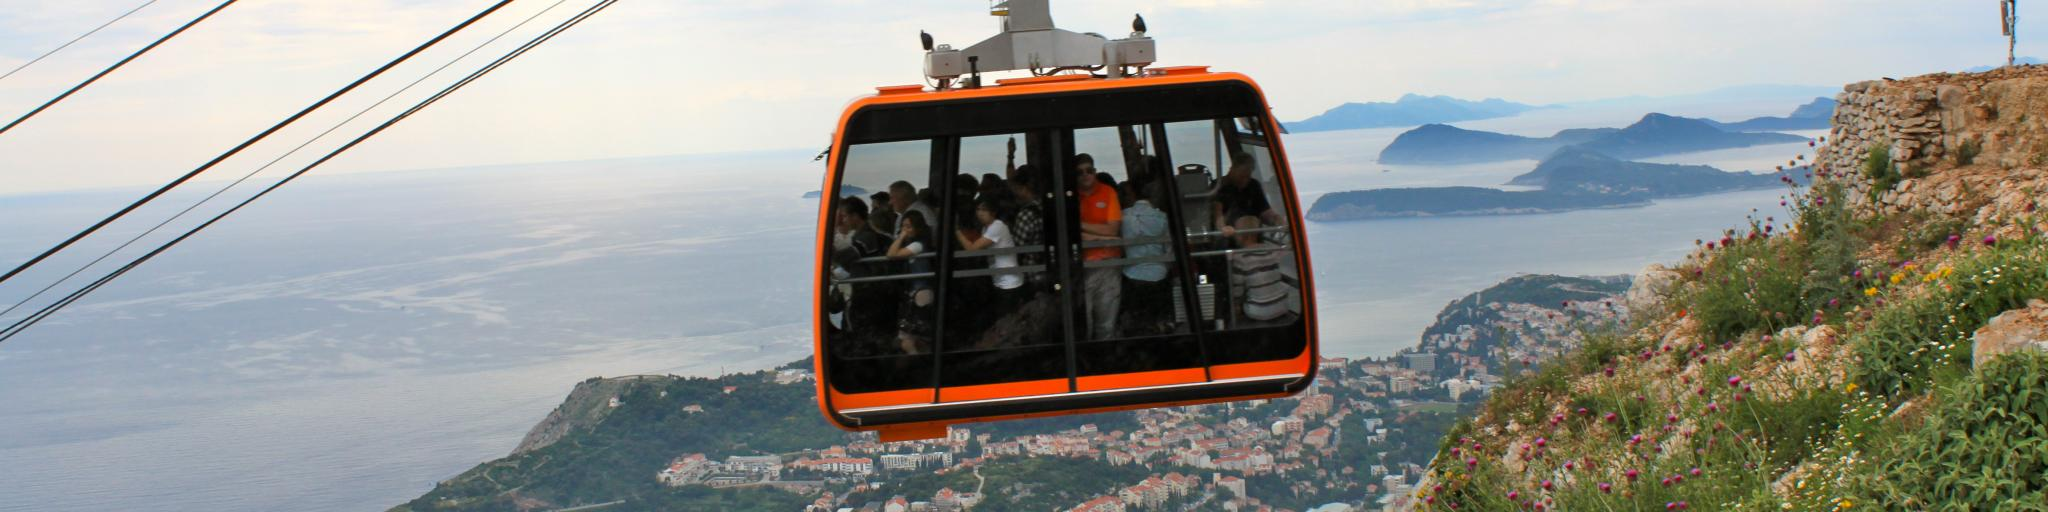 An orange cable car carries passengers up a hill in Dubrovnik, Croatia